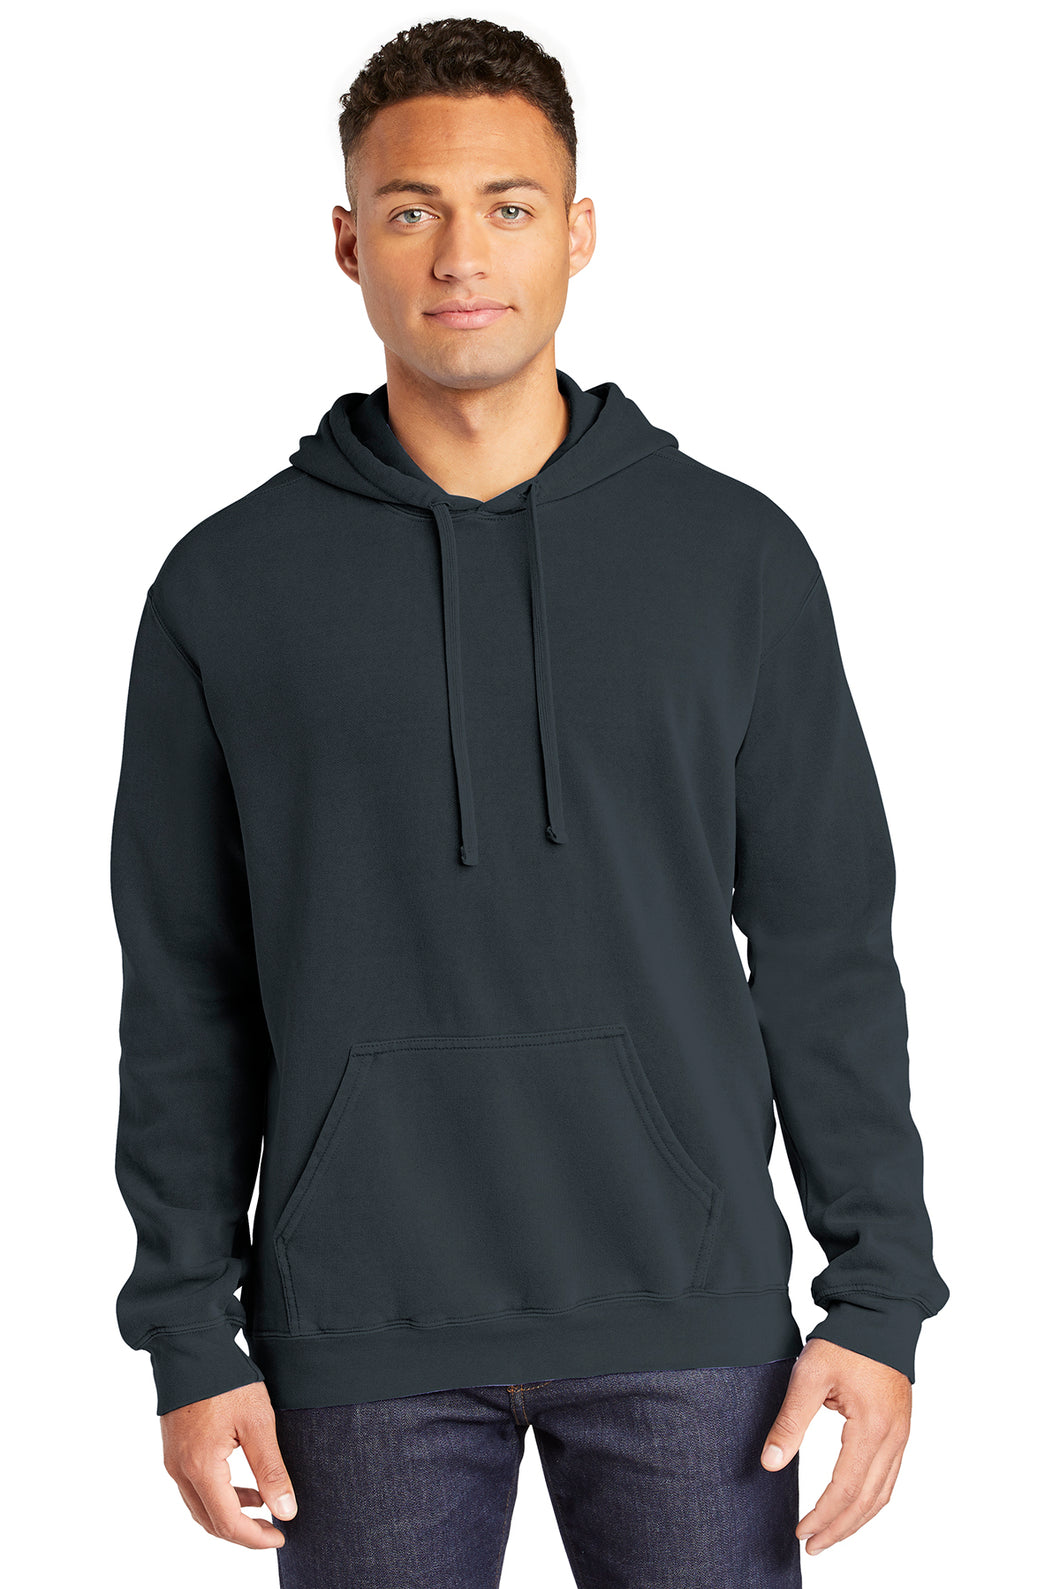 Comfort Colors Ring Spun Hooded Sweatshirt